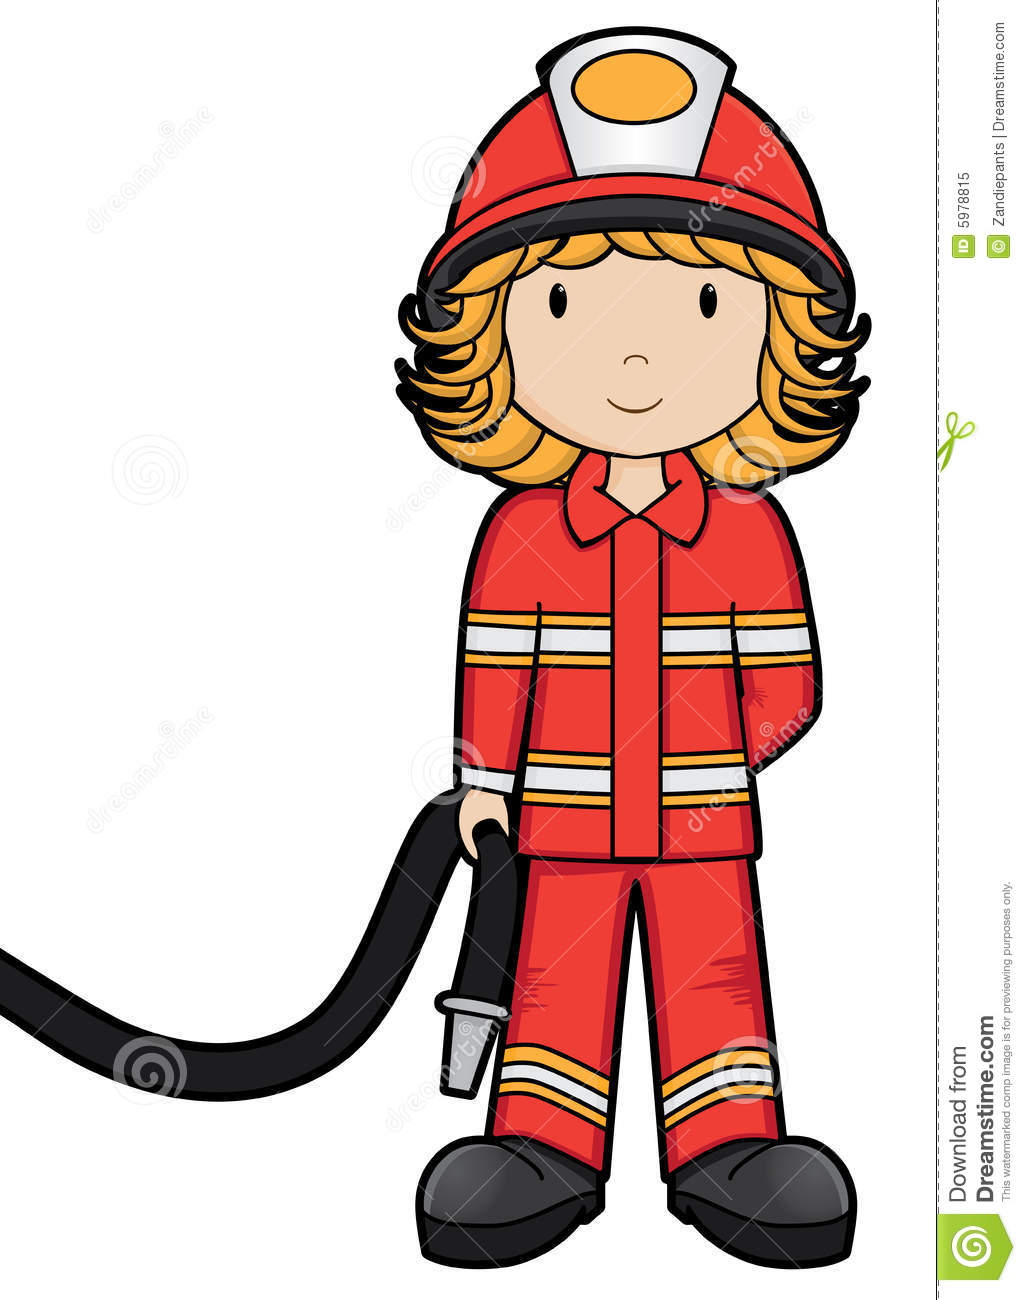 Fire Fighter Clip Art. Fire Girl Vector Royalty Free Stock Photo Image 5978815